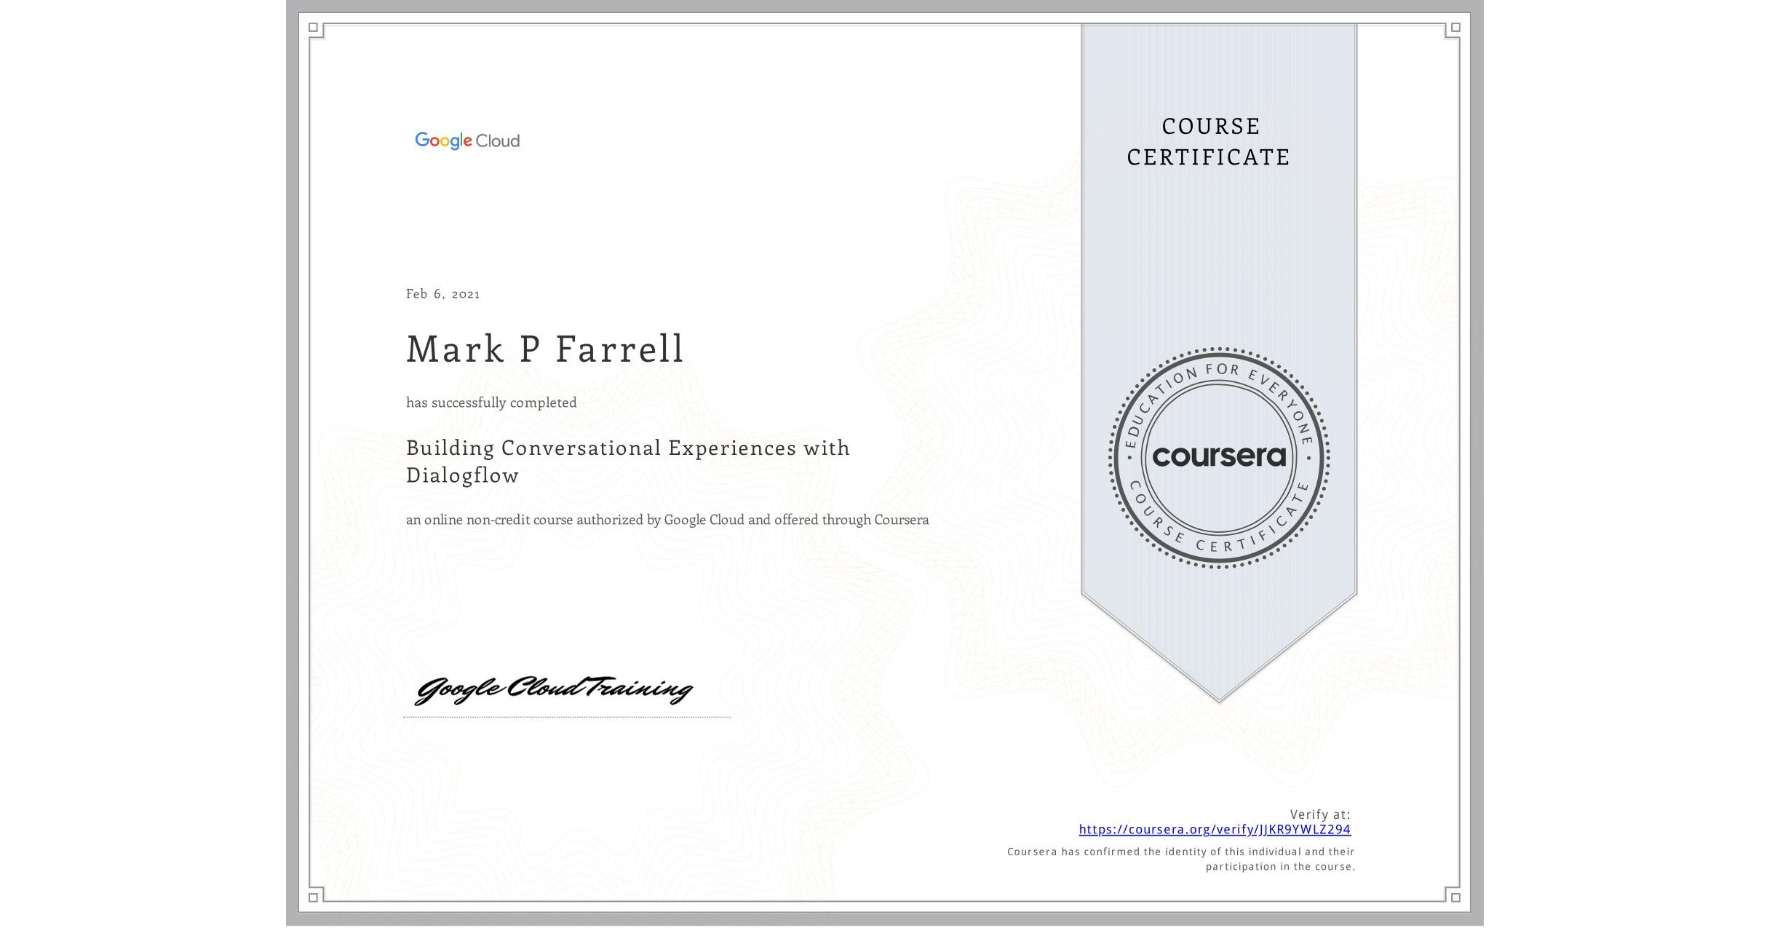 View certificate for Mark P Farrell, Building Conversational Experiences with Dialogflow, an online non-credit course authorized by Google Cloud and offered through Coursera